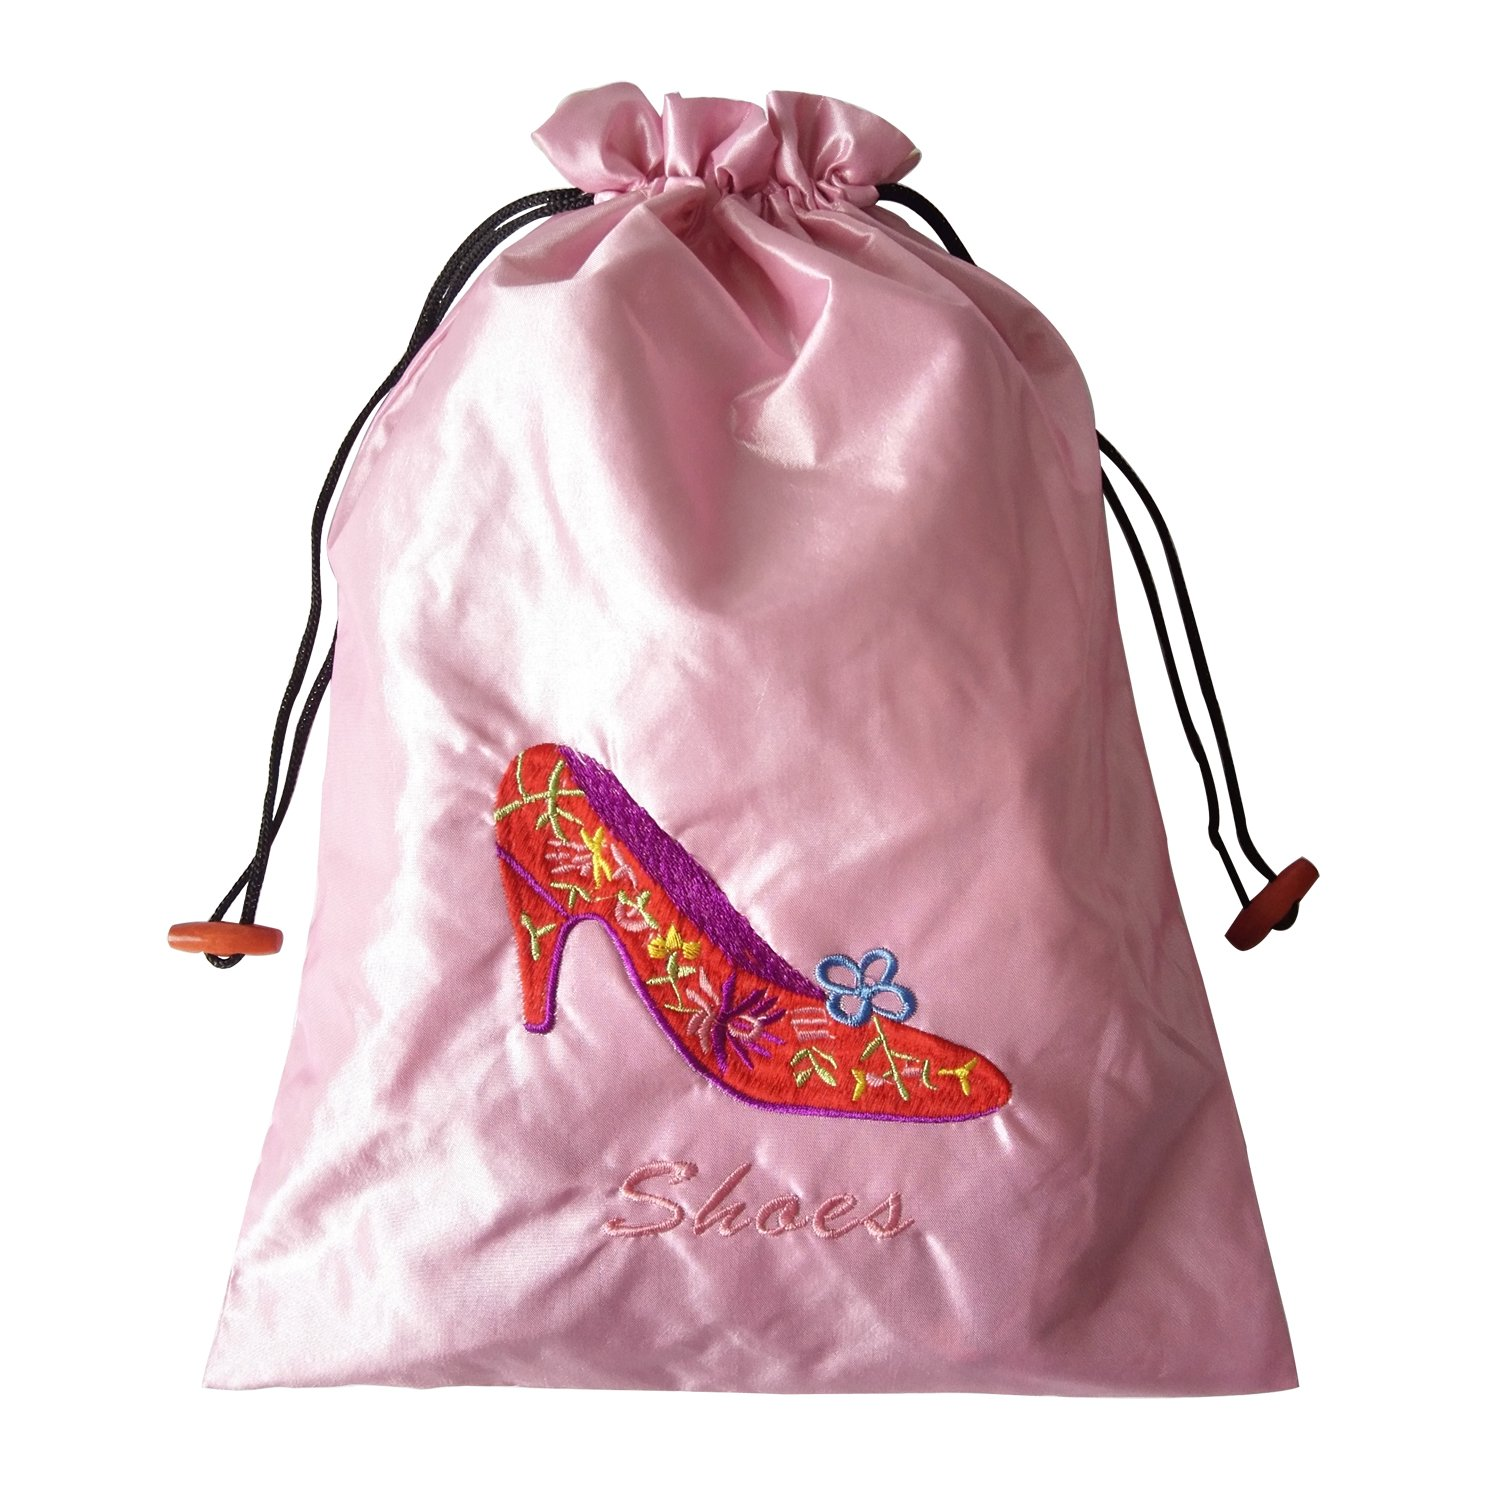 Gold Fortune 3 Packs 10.5'' x 14'' (L x W) Embroidered Silk Jacquard Travel Lingerie and Shoes Bags with Drawstring Closure (Pink) by Gold Fortune (Image #4)